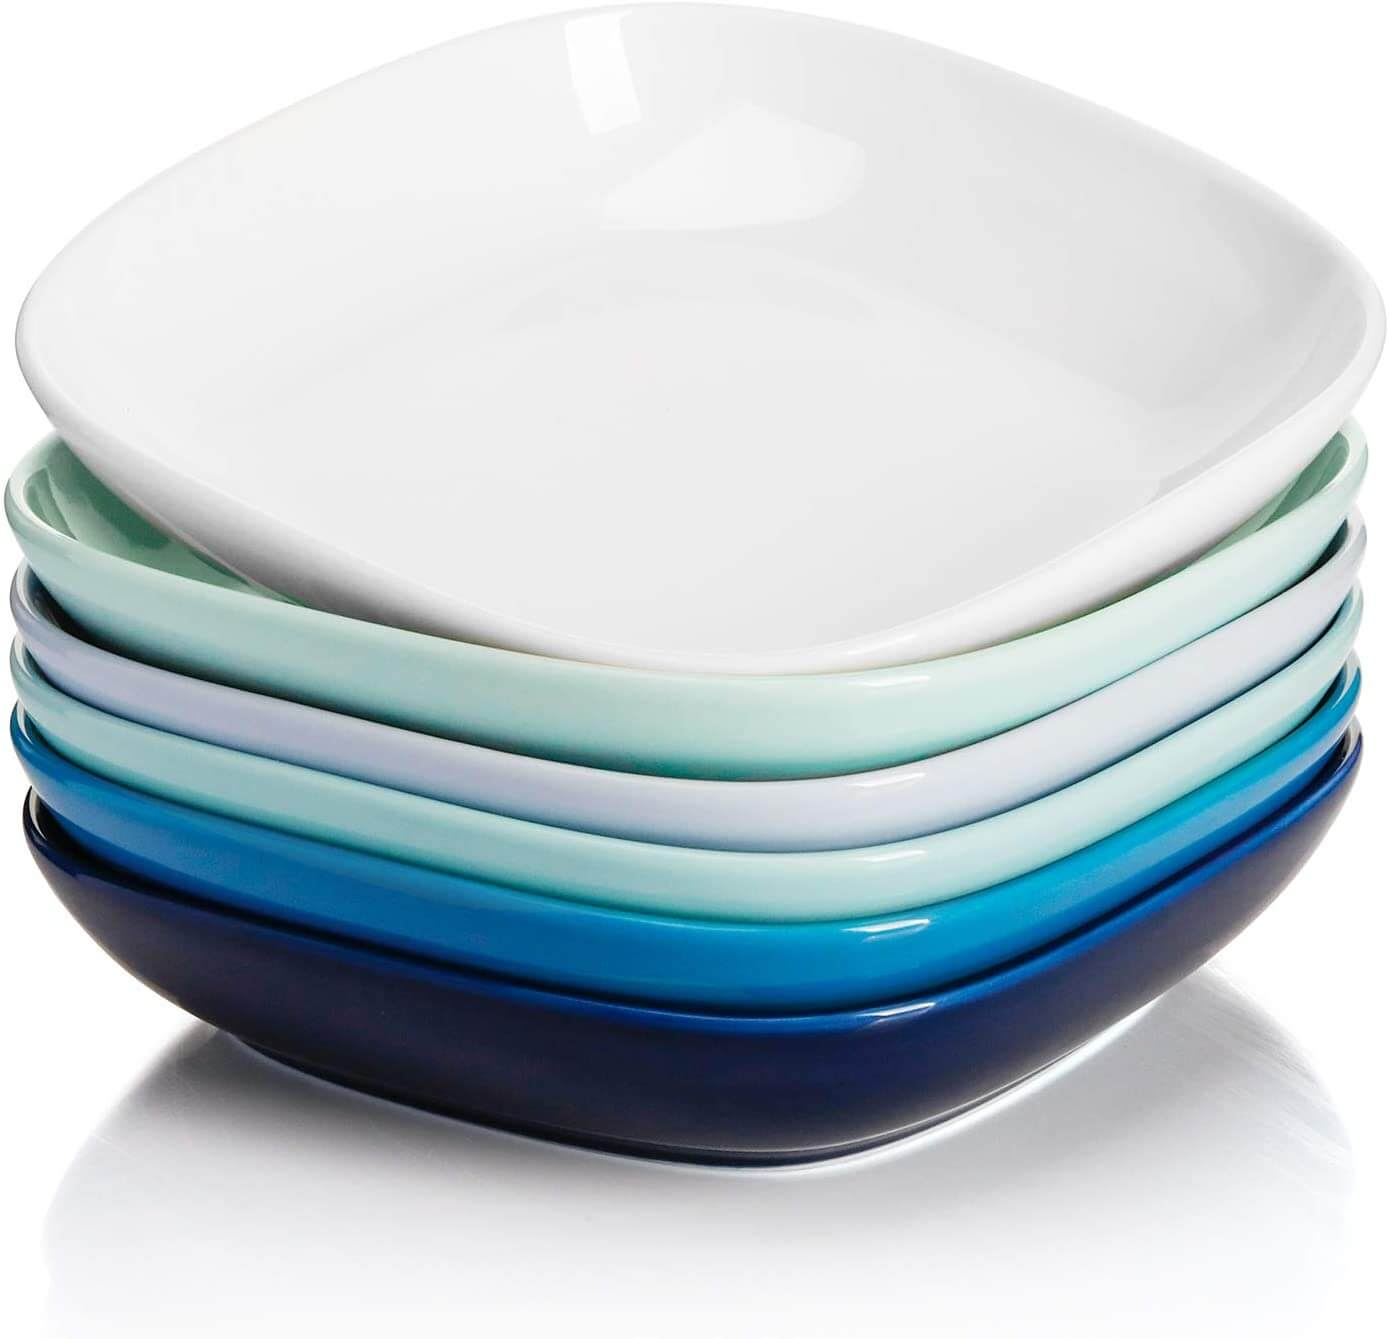 Sweese 121.003 Porcelain Square Salad Pasta Bowls